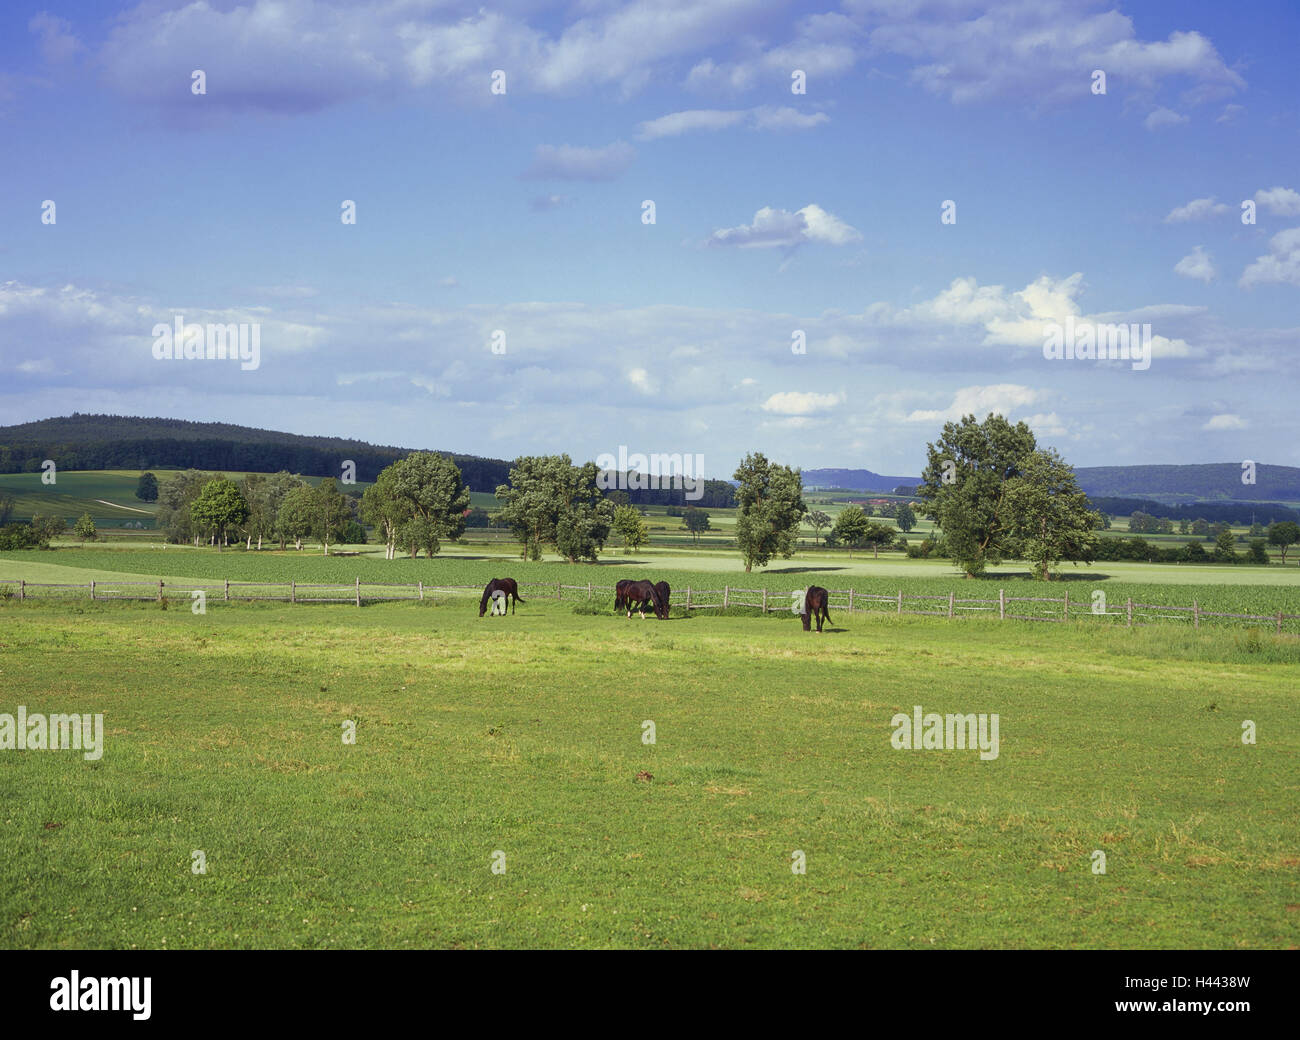 Germany, Bavaria, Central Franconia, white castle, scenery, pasture, horses, francs, agriculture, civilised country, - Stock Image